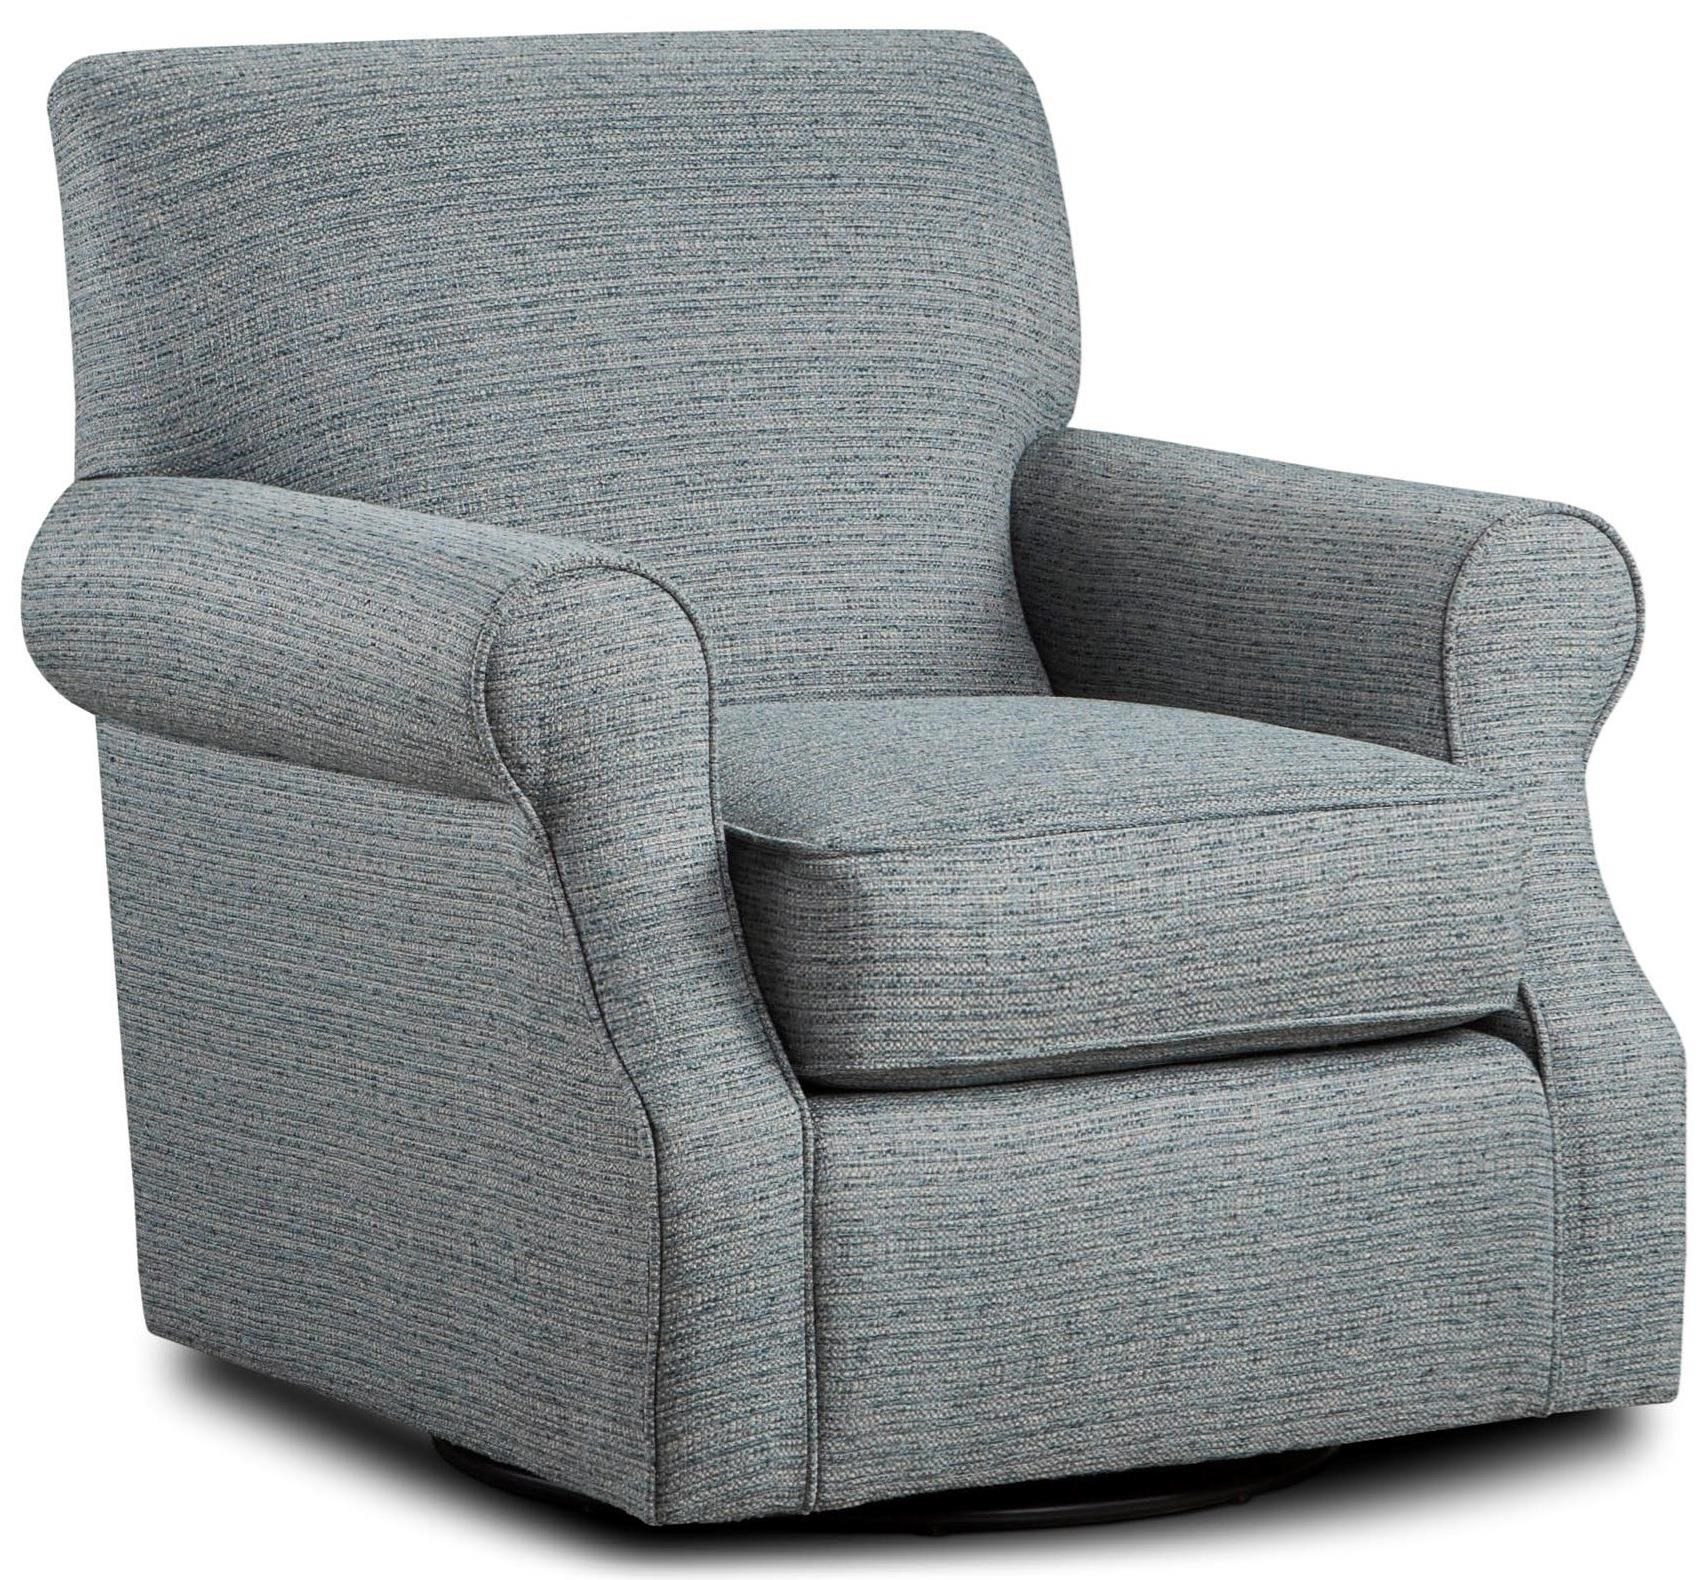 20 Best Umber Grey Swivel Accent Chairs Sofa Ideas